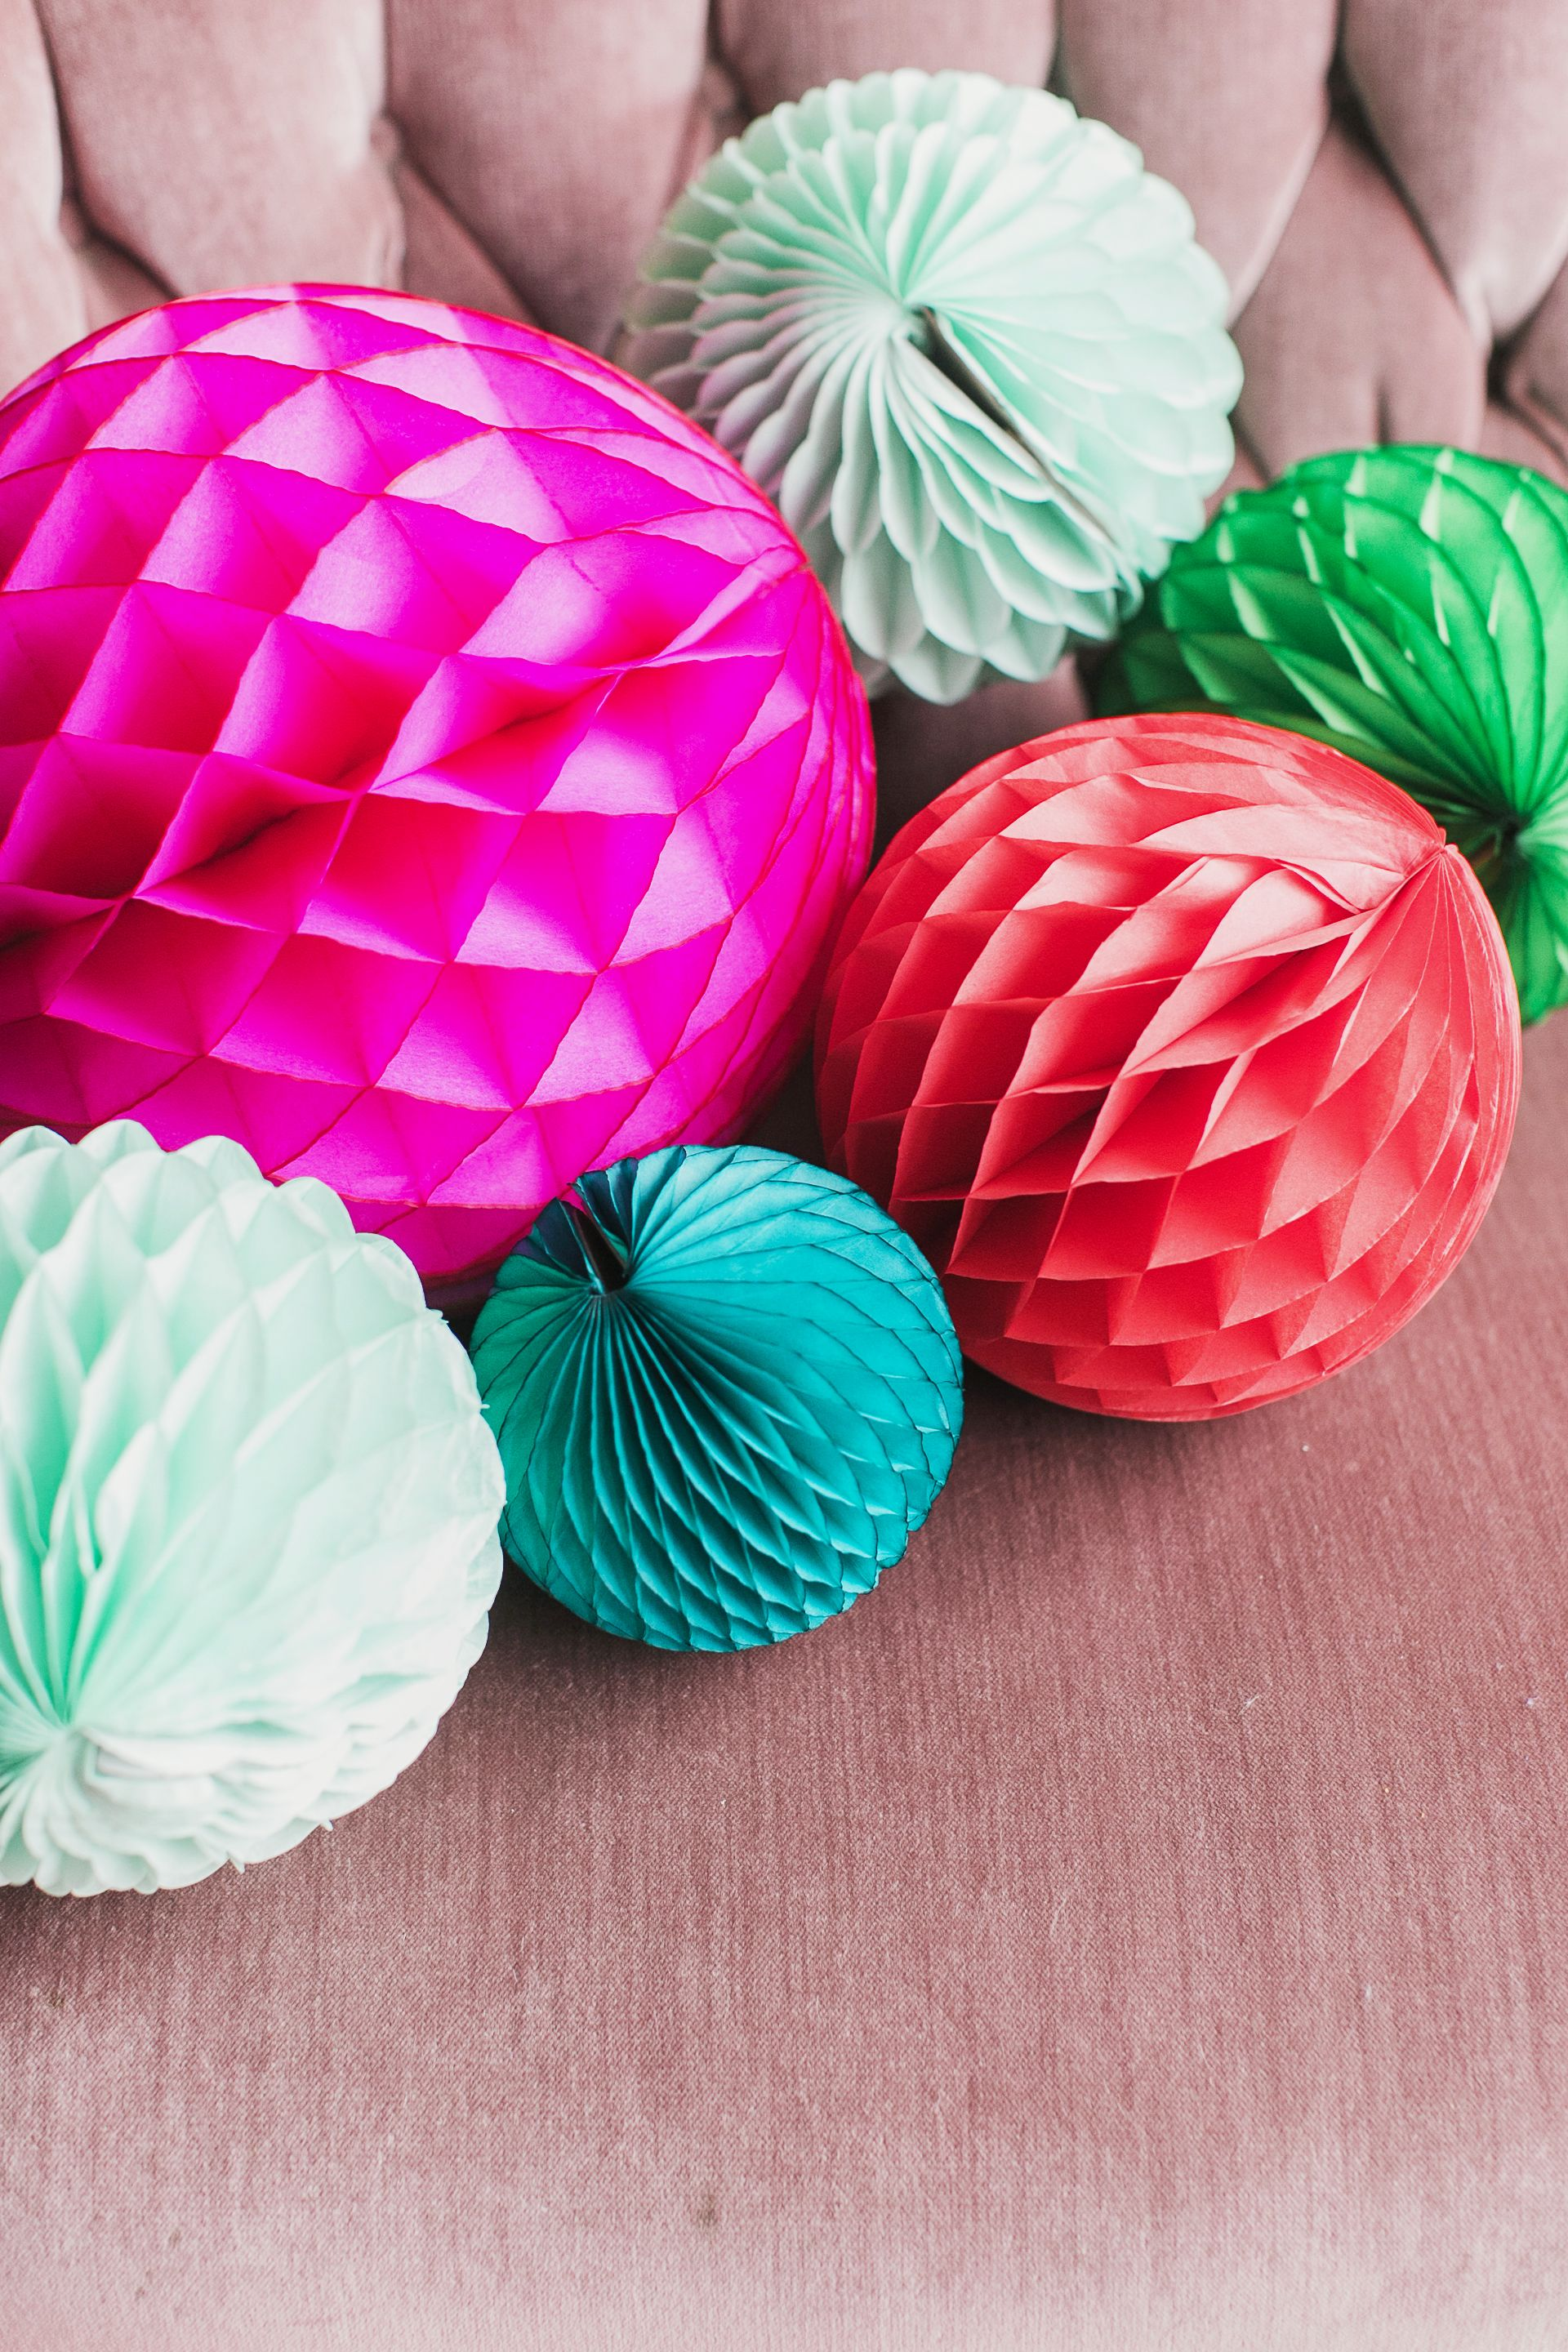 Honeycomb Balls By Devra Party Holly Jolly Pop Up 2014 Paper Decorations Tissue Paper Decorations Honeycomb Decorations